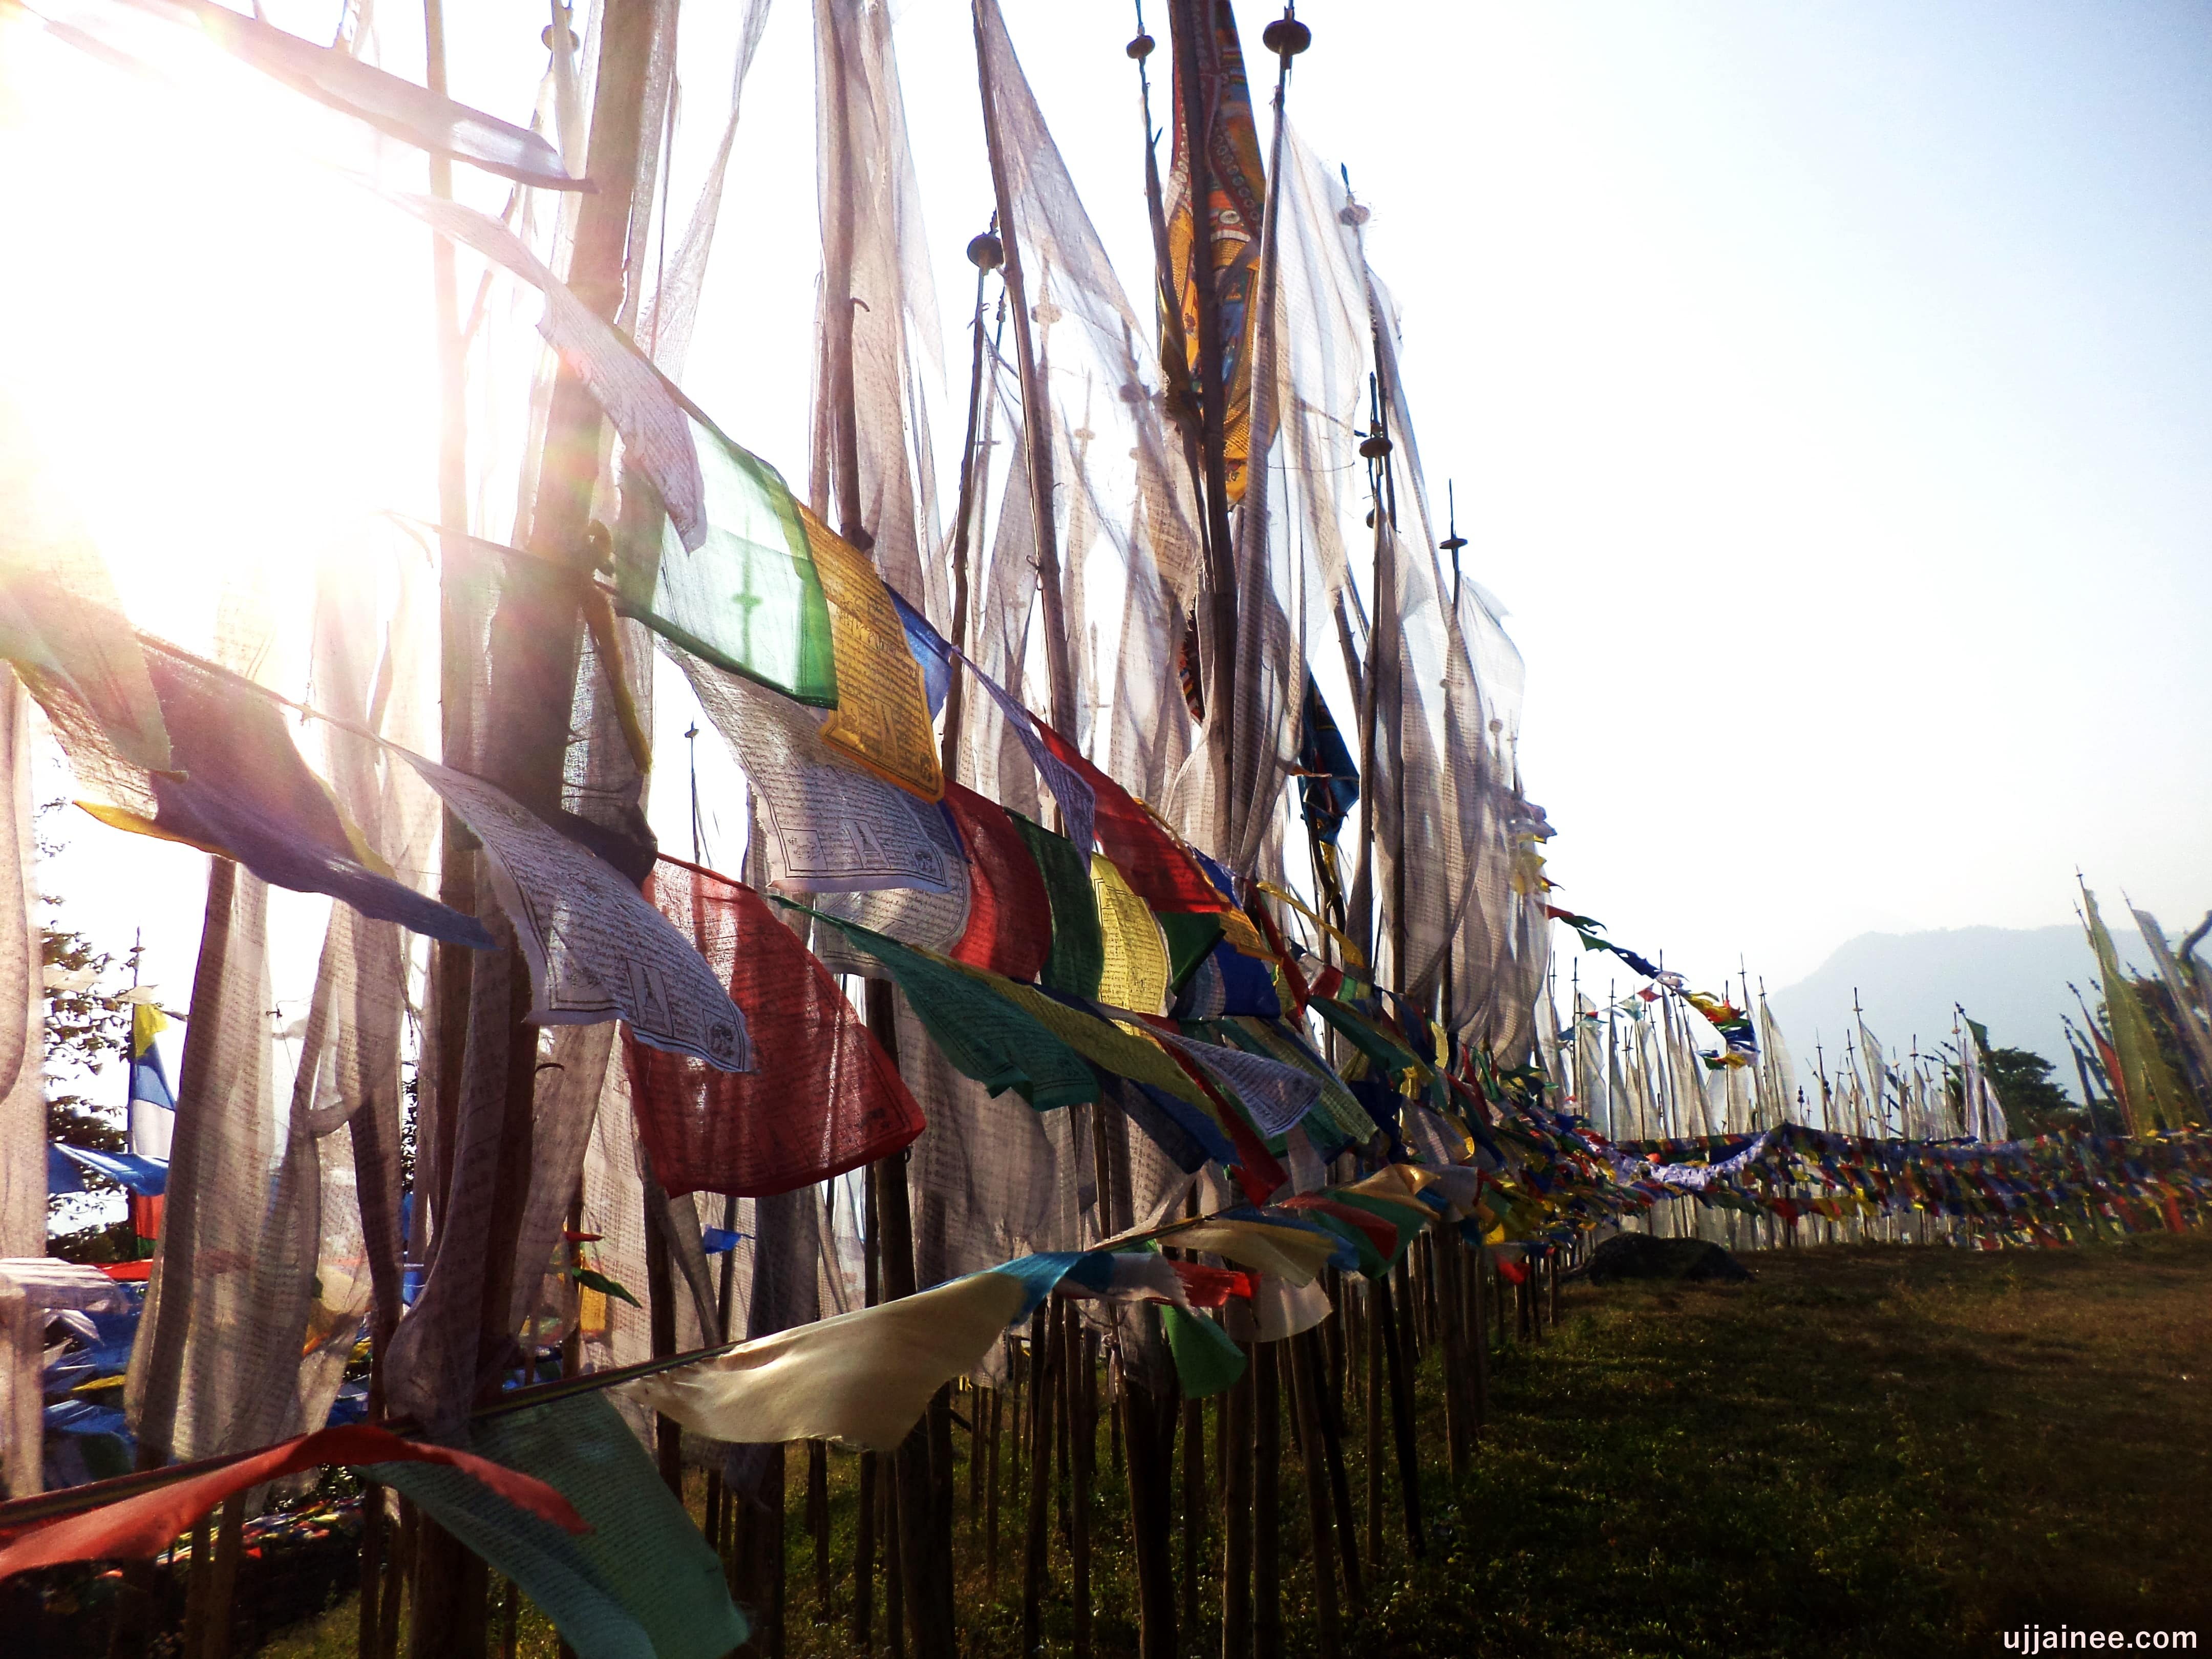 Things to do and see in Phuentsholing